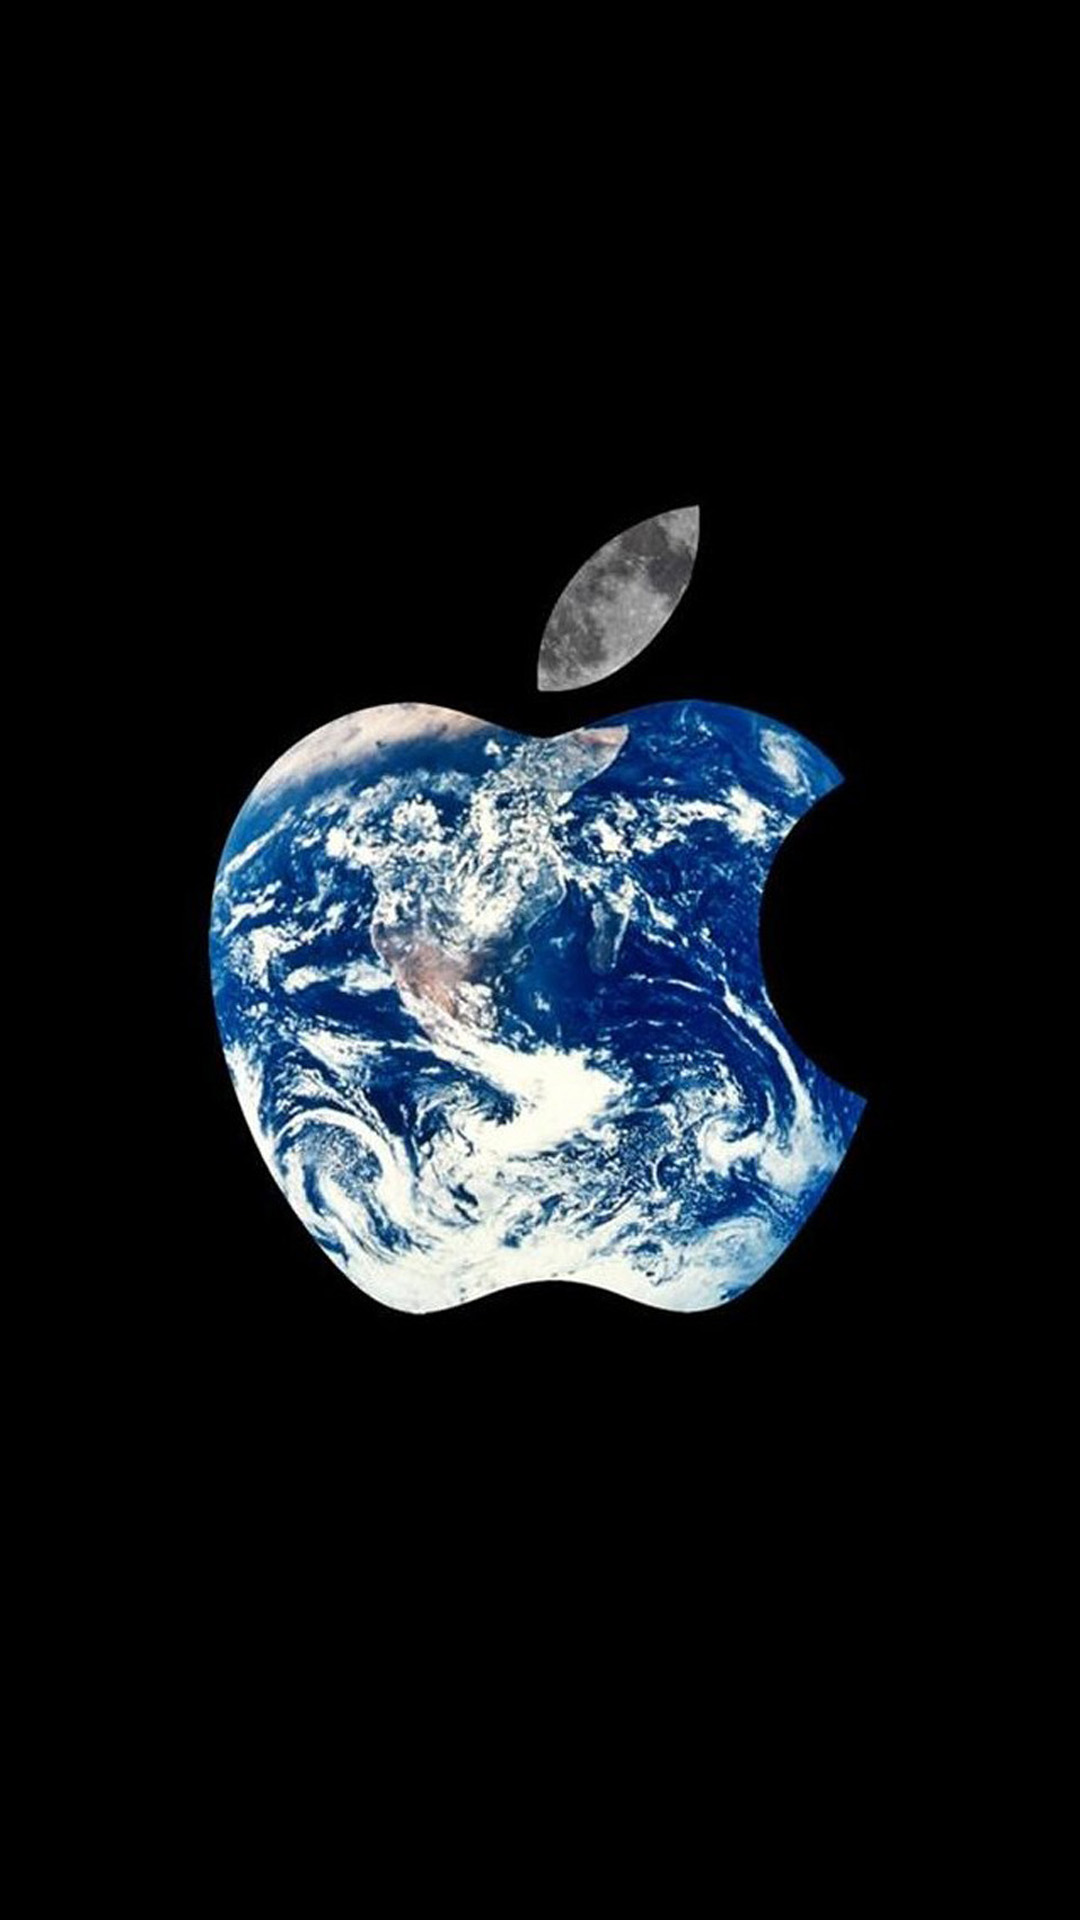 Earth Apple LOGO iPhone 7 and 7 Plus Wallpapers HD 1080x1920